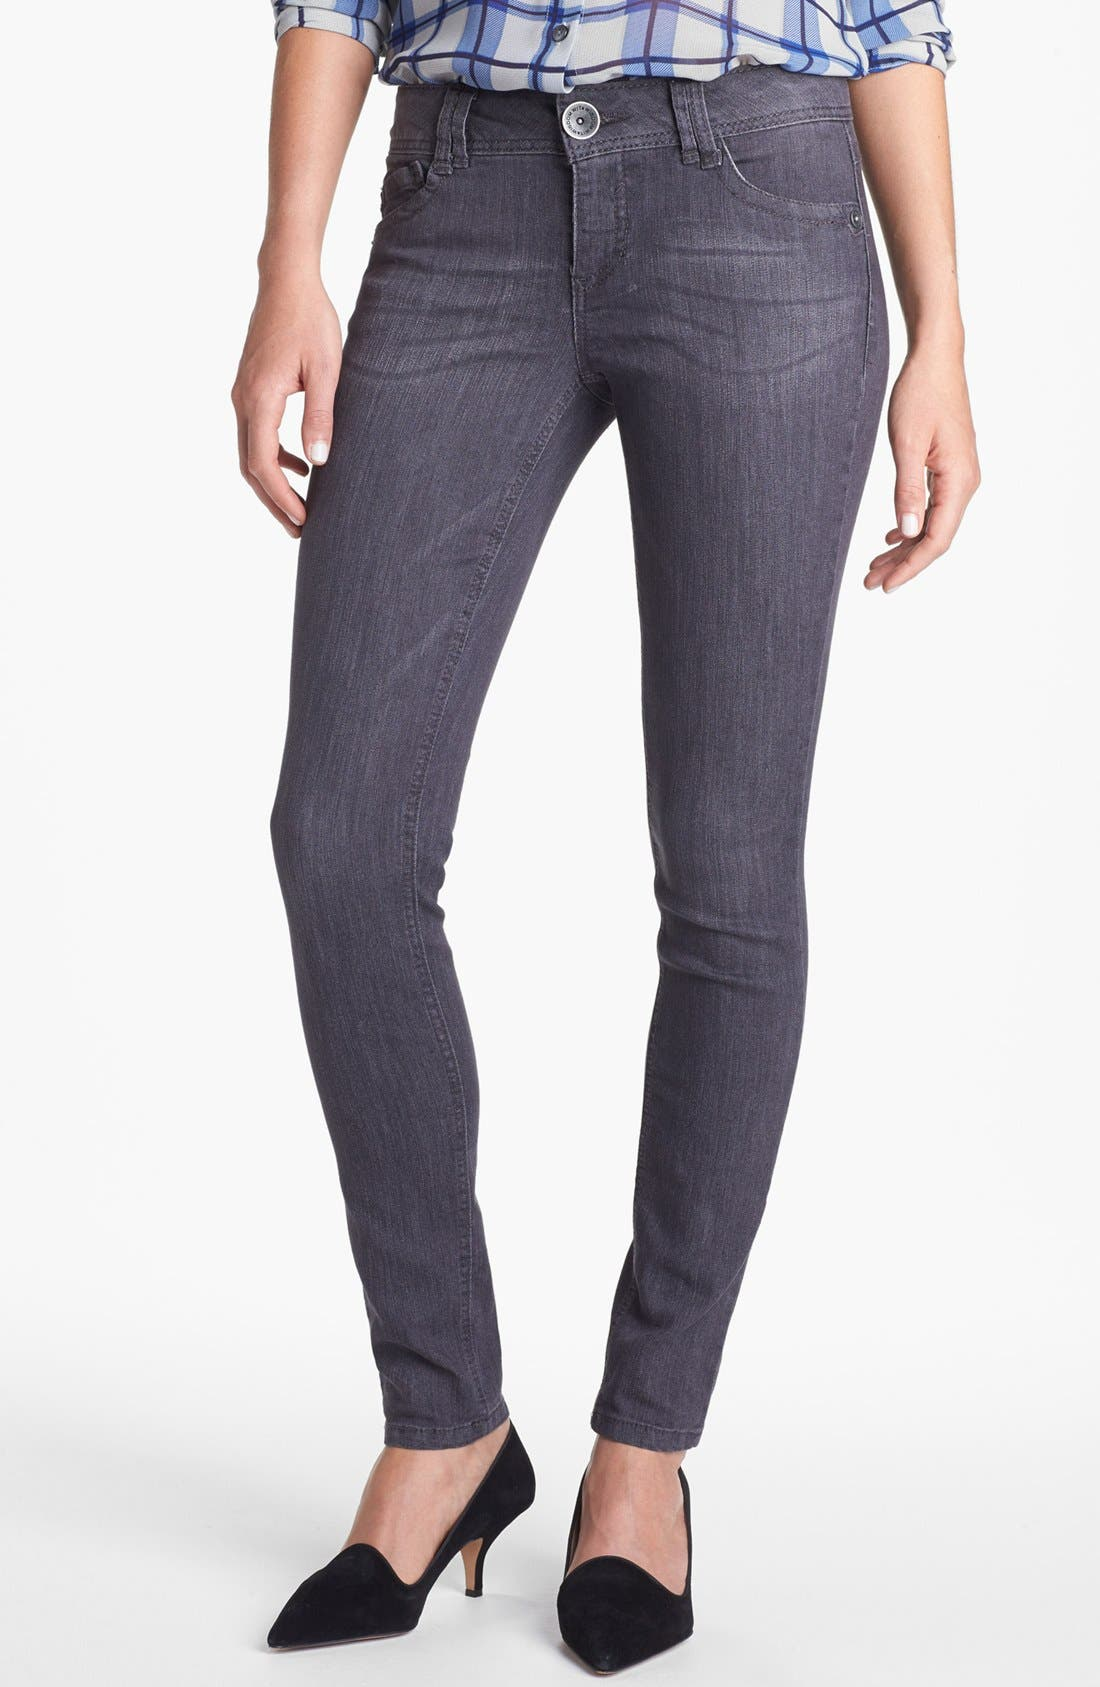 Alternate Image 1 Selected - Wit & Wisdom Skinny Jeans (Dark Grey) (Nordstrom Exclusive)